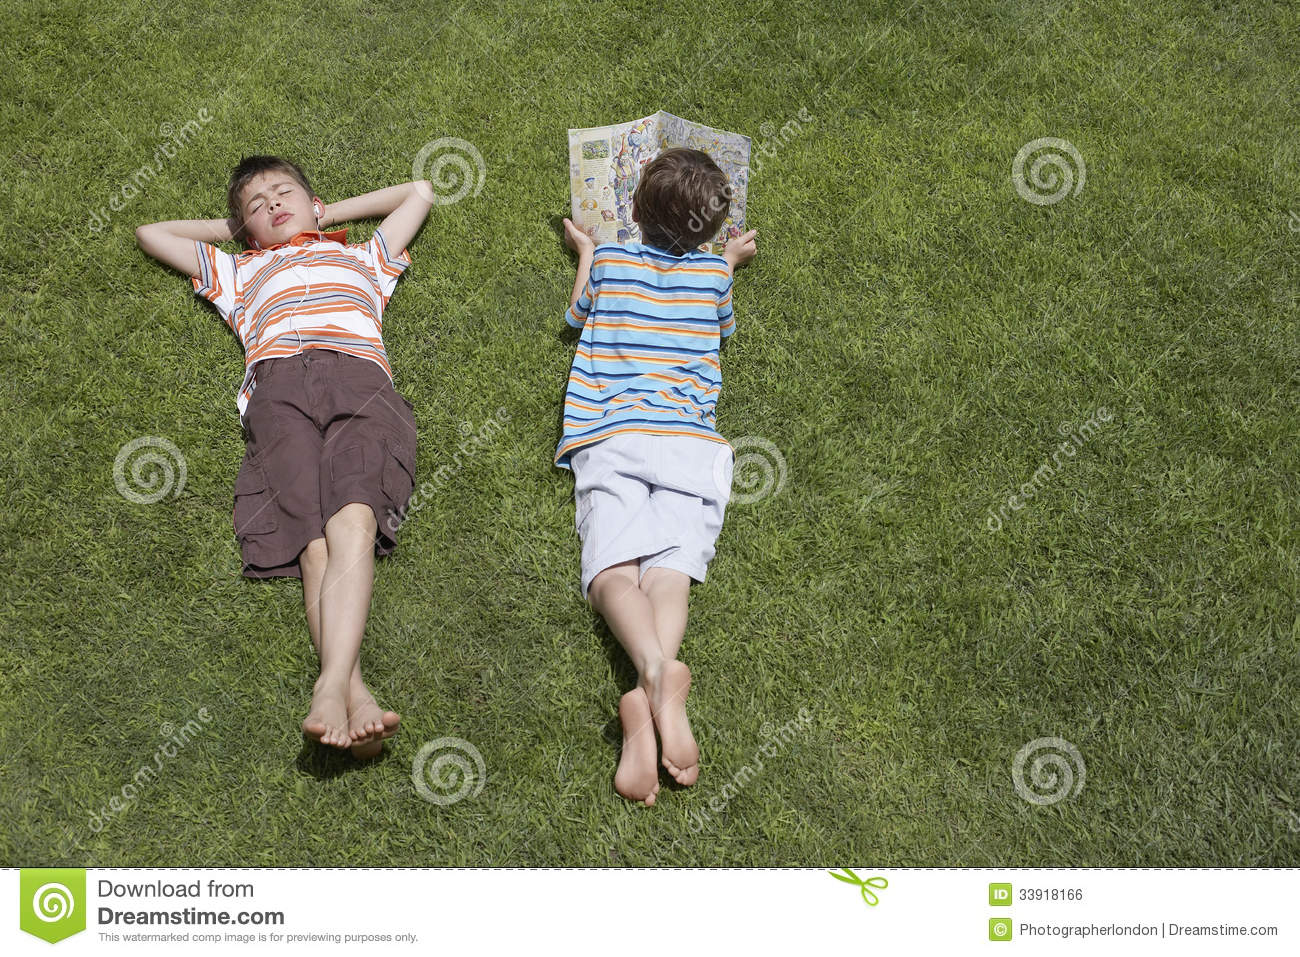 ... Asleep Brother On Grass Royalty Free Stock Image - Image: 33918166